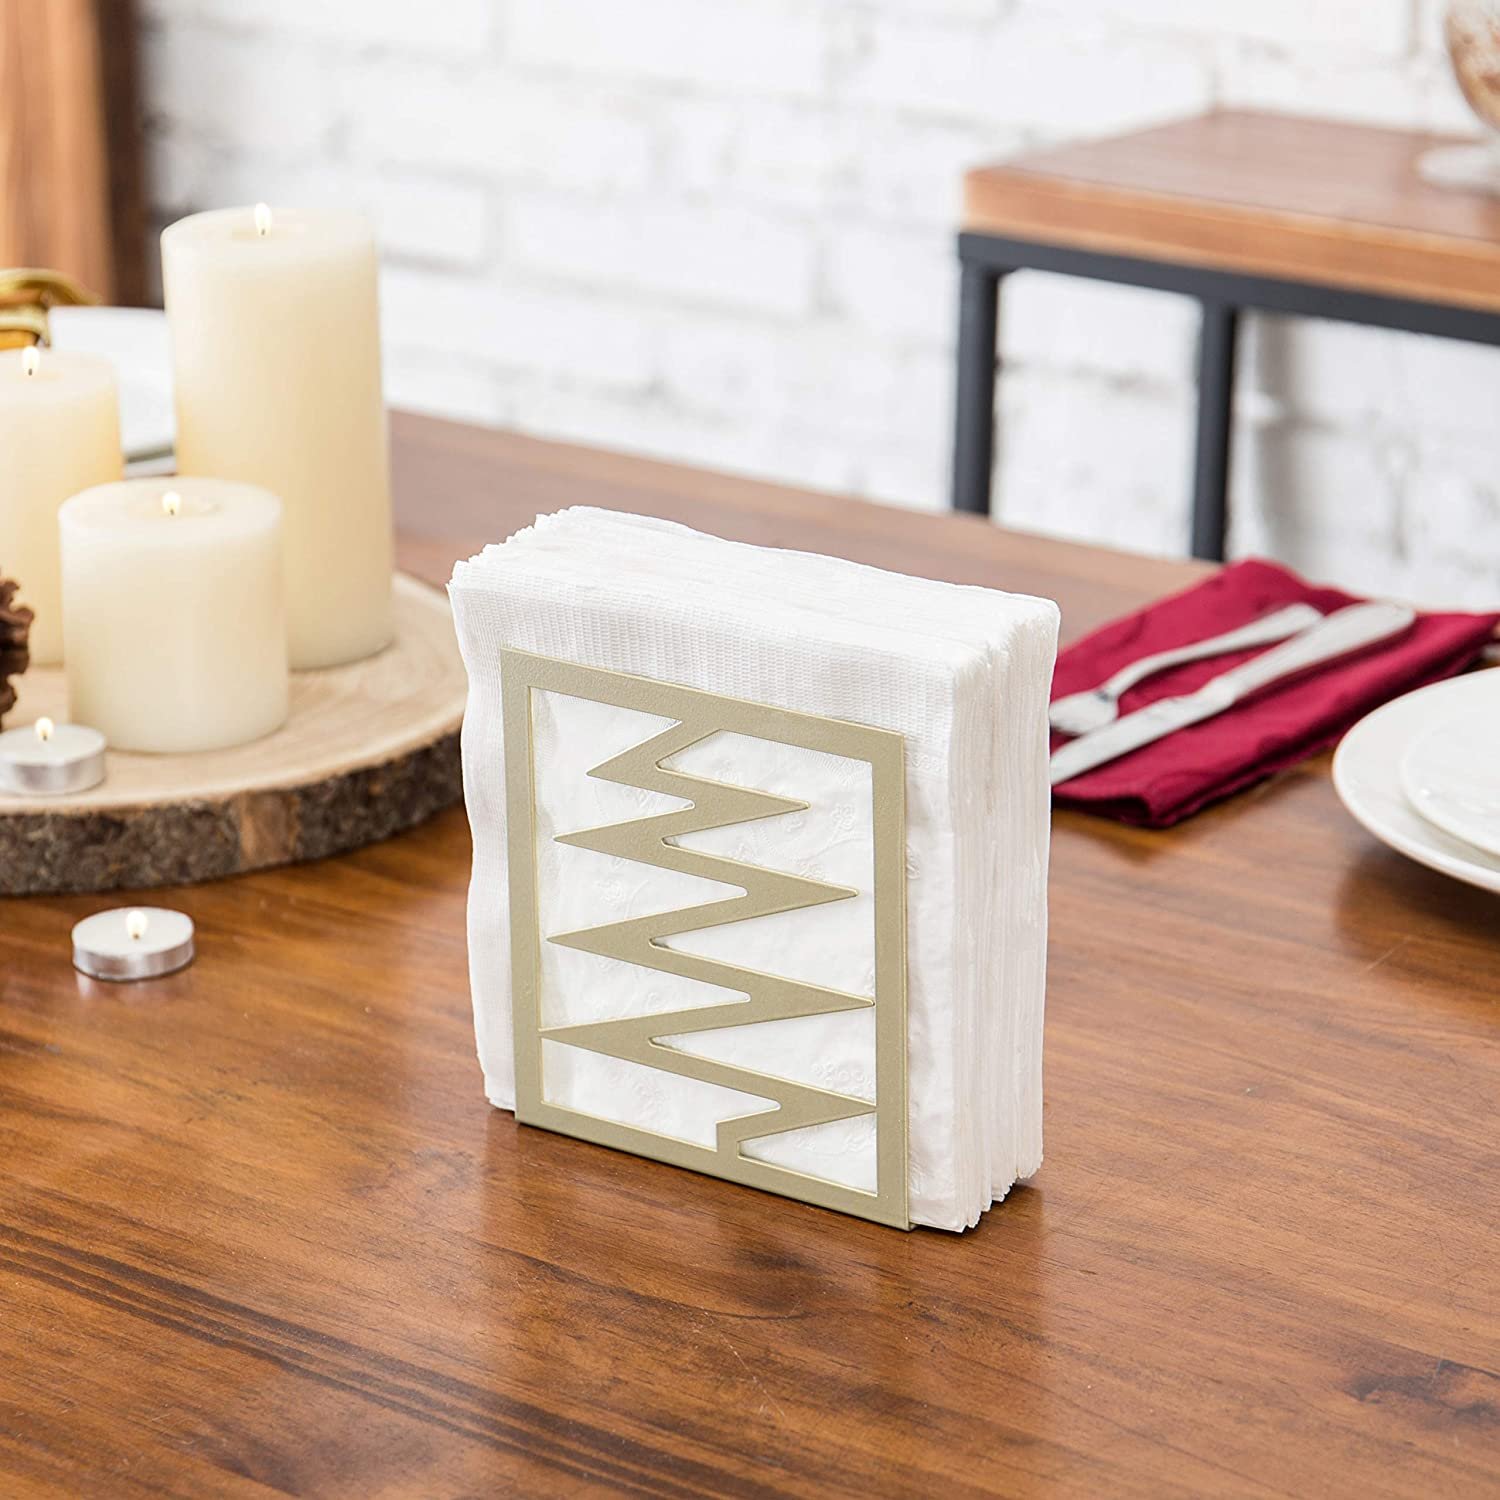 MyGift Modern Holiday Tree Design Brass-Tone Metal Napkin Holder